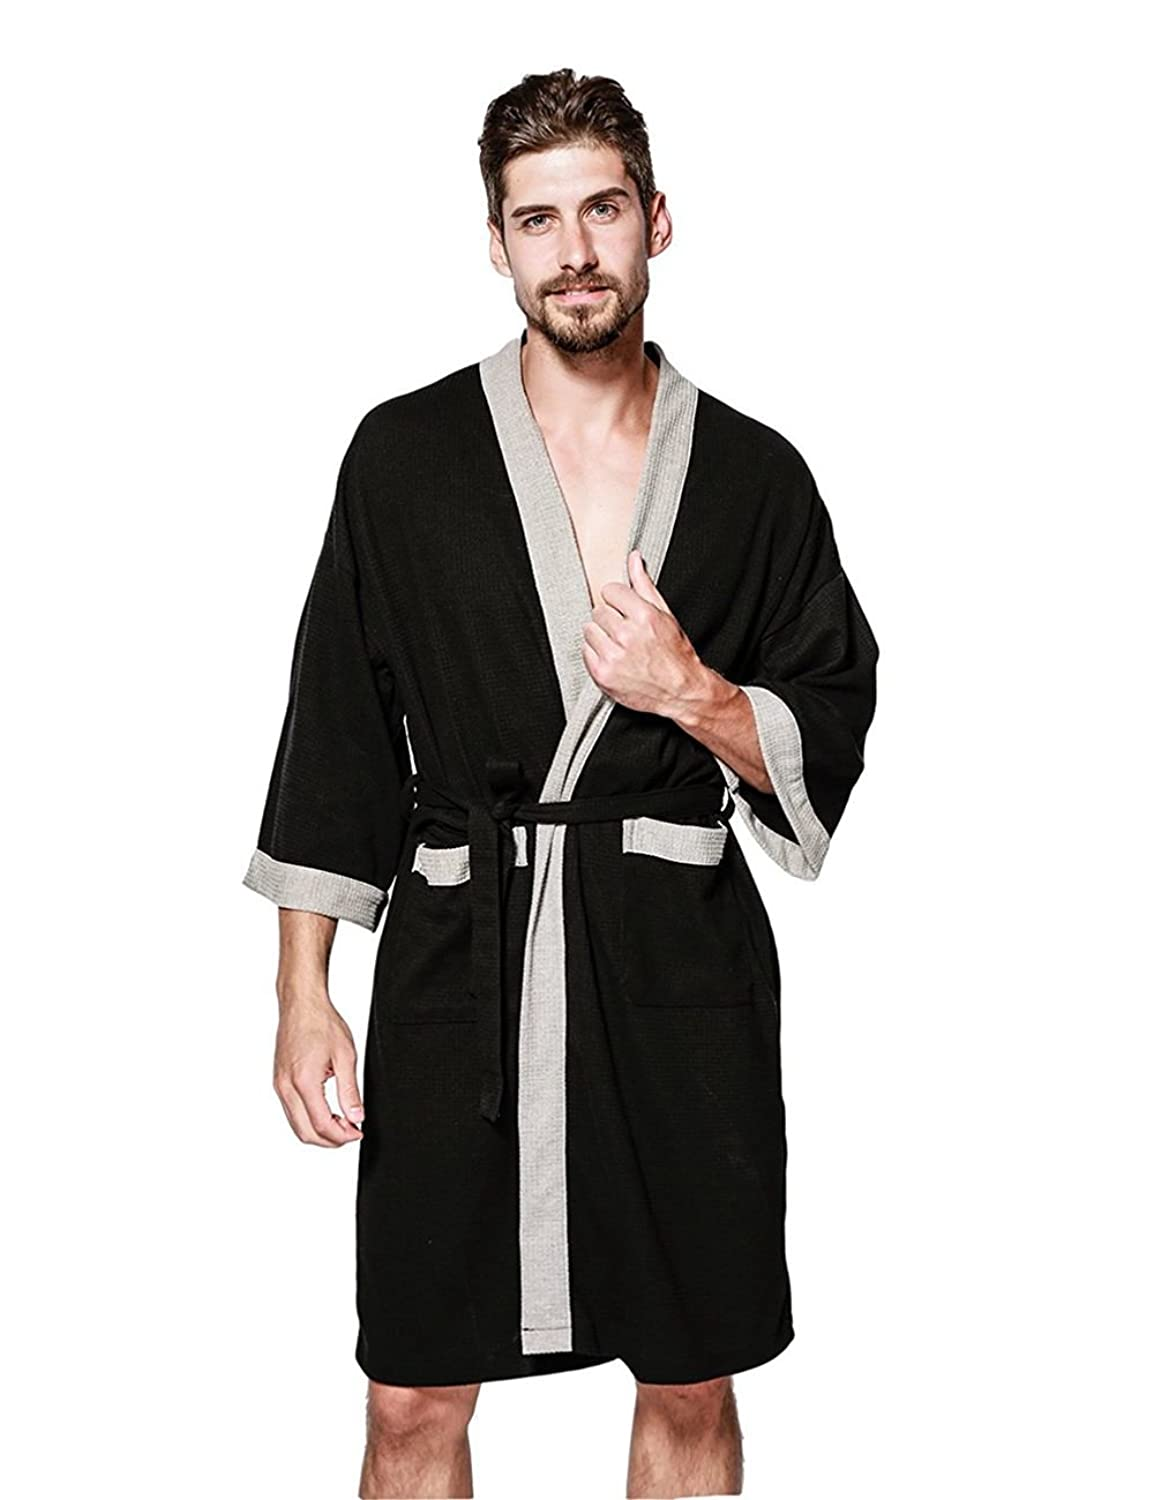 Ween Charm Men's Waffle Kimono Robe Cotton Lightweight Nightgowns Spa Terry Cloth Bathrobe Sleepwear by Ween Charm